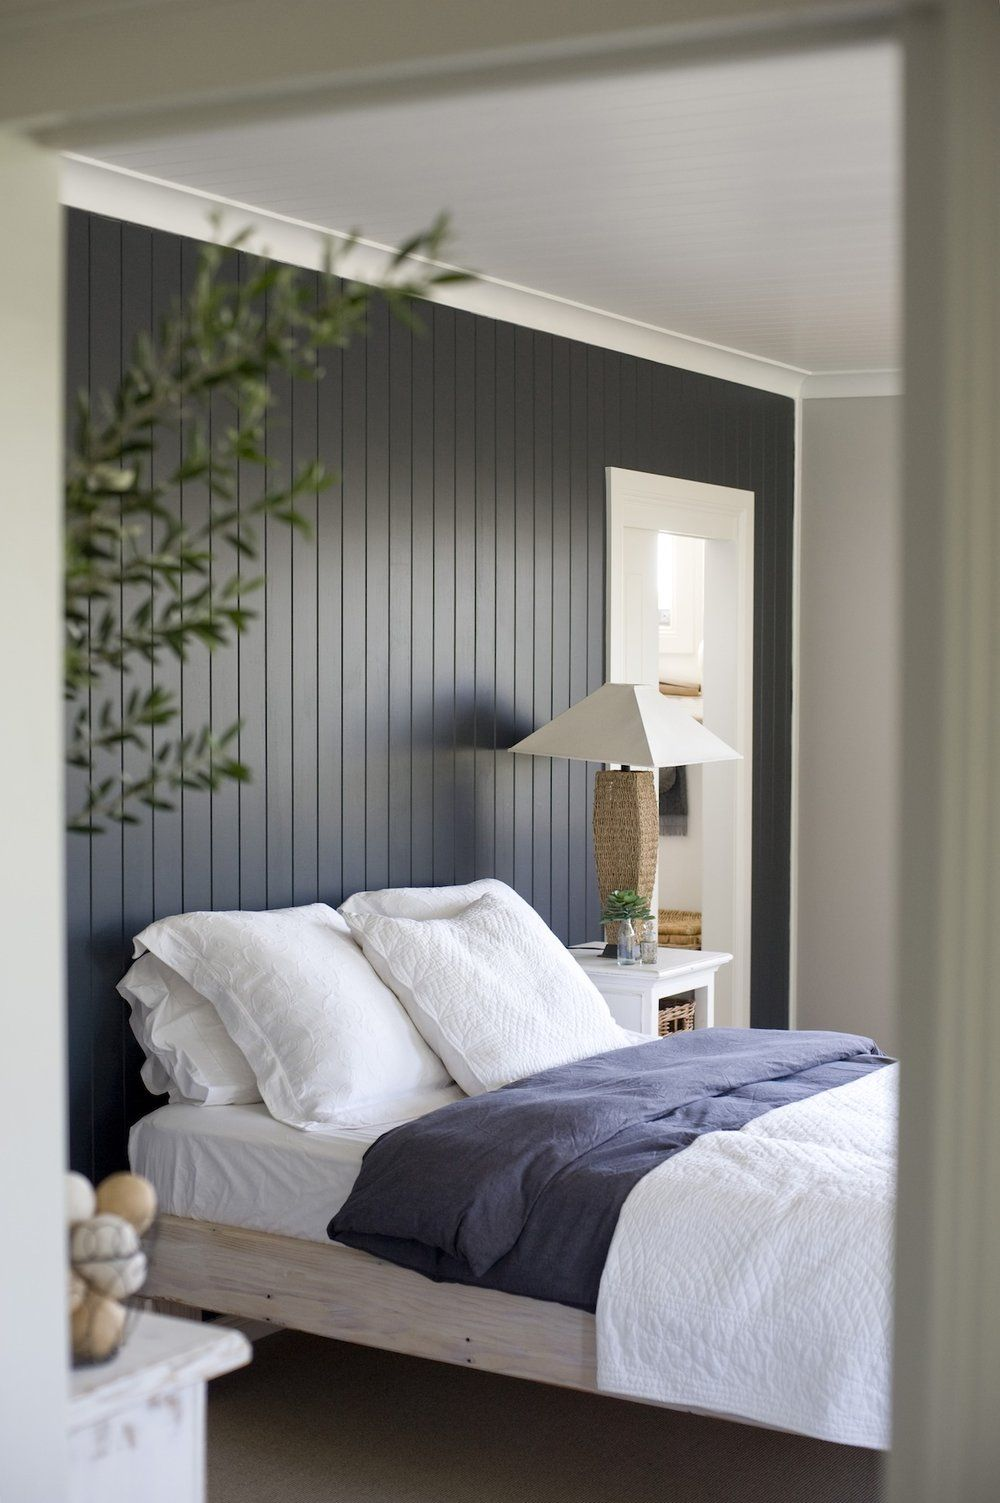 Why We Love Painted Vertical Paneling